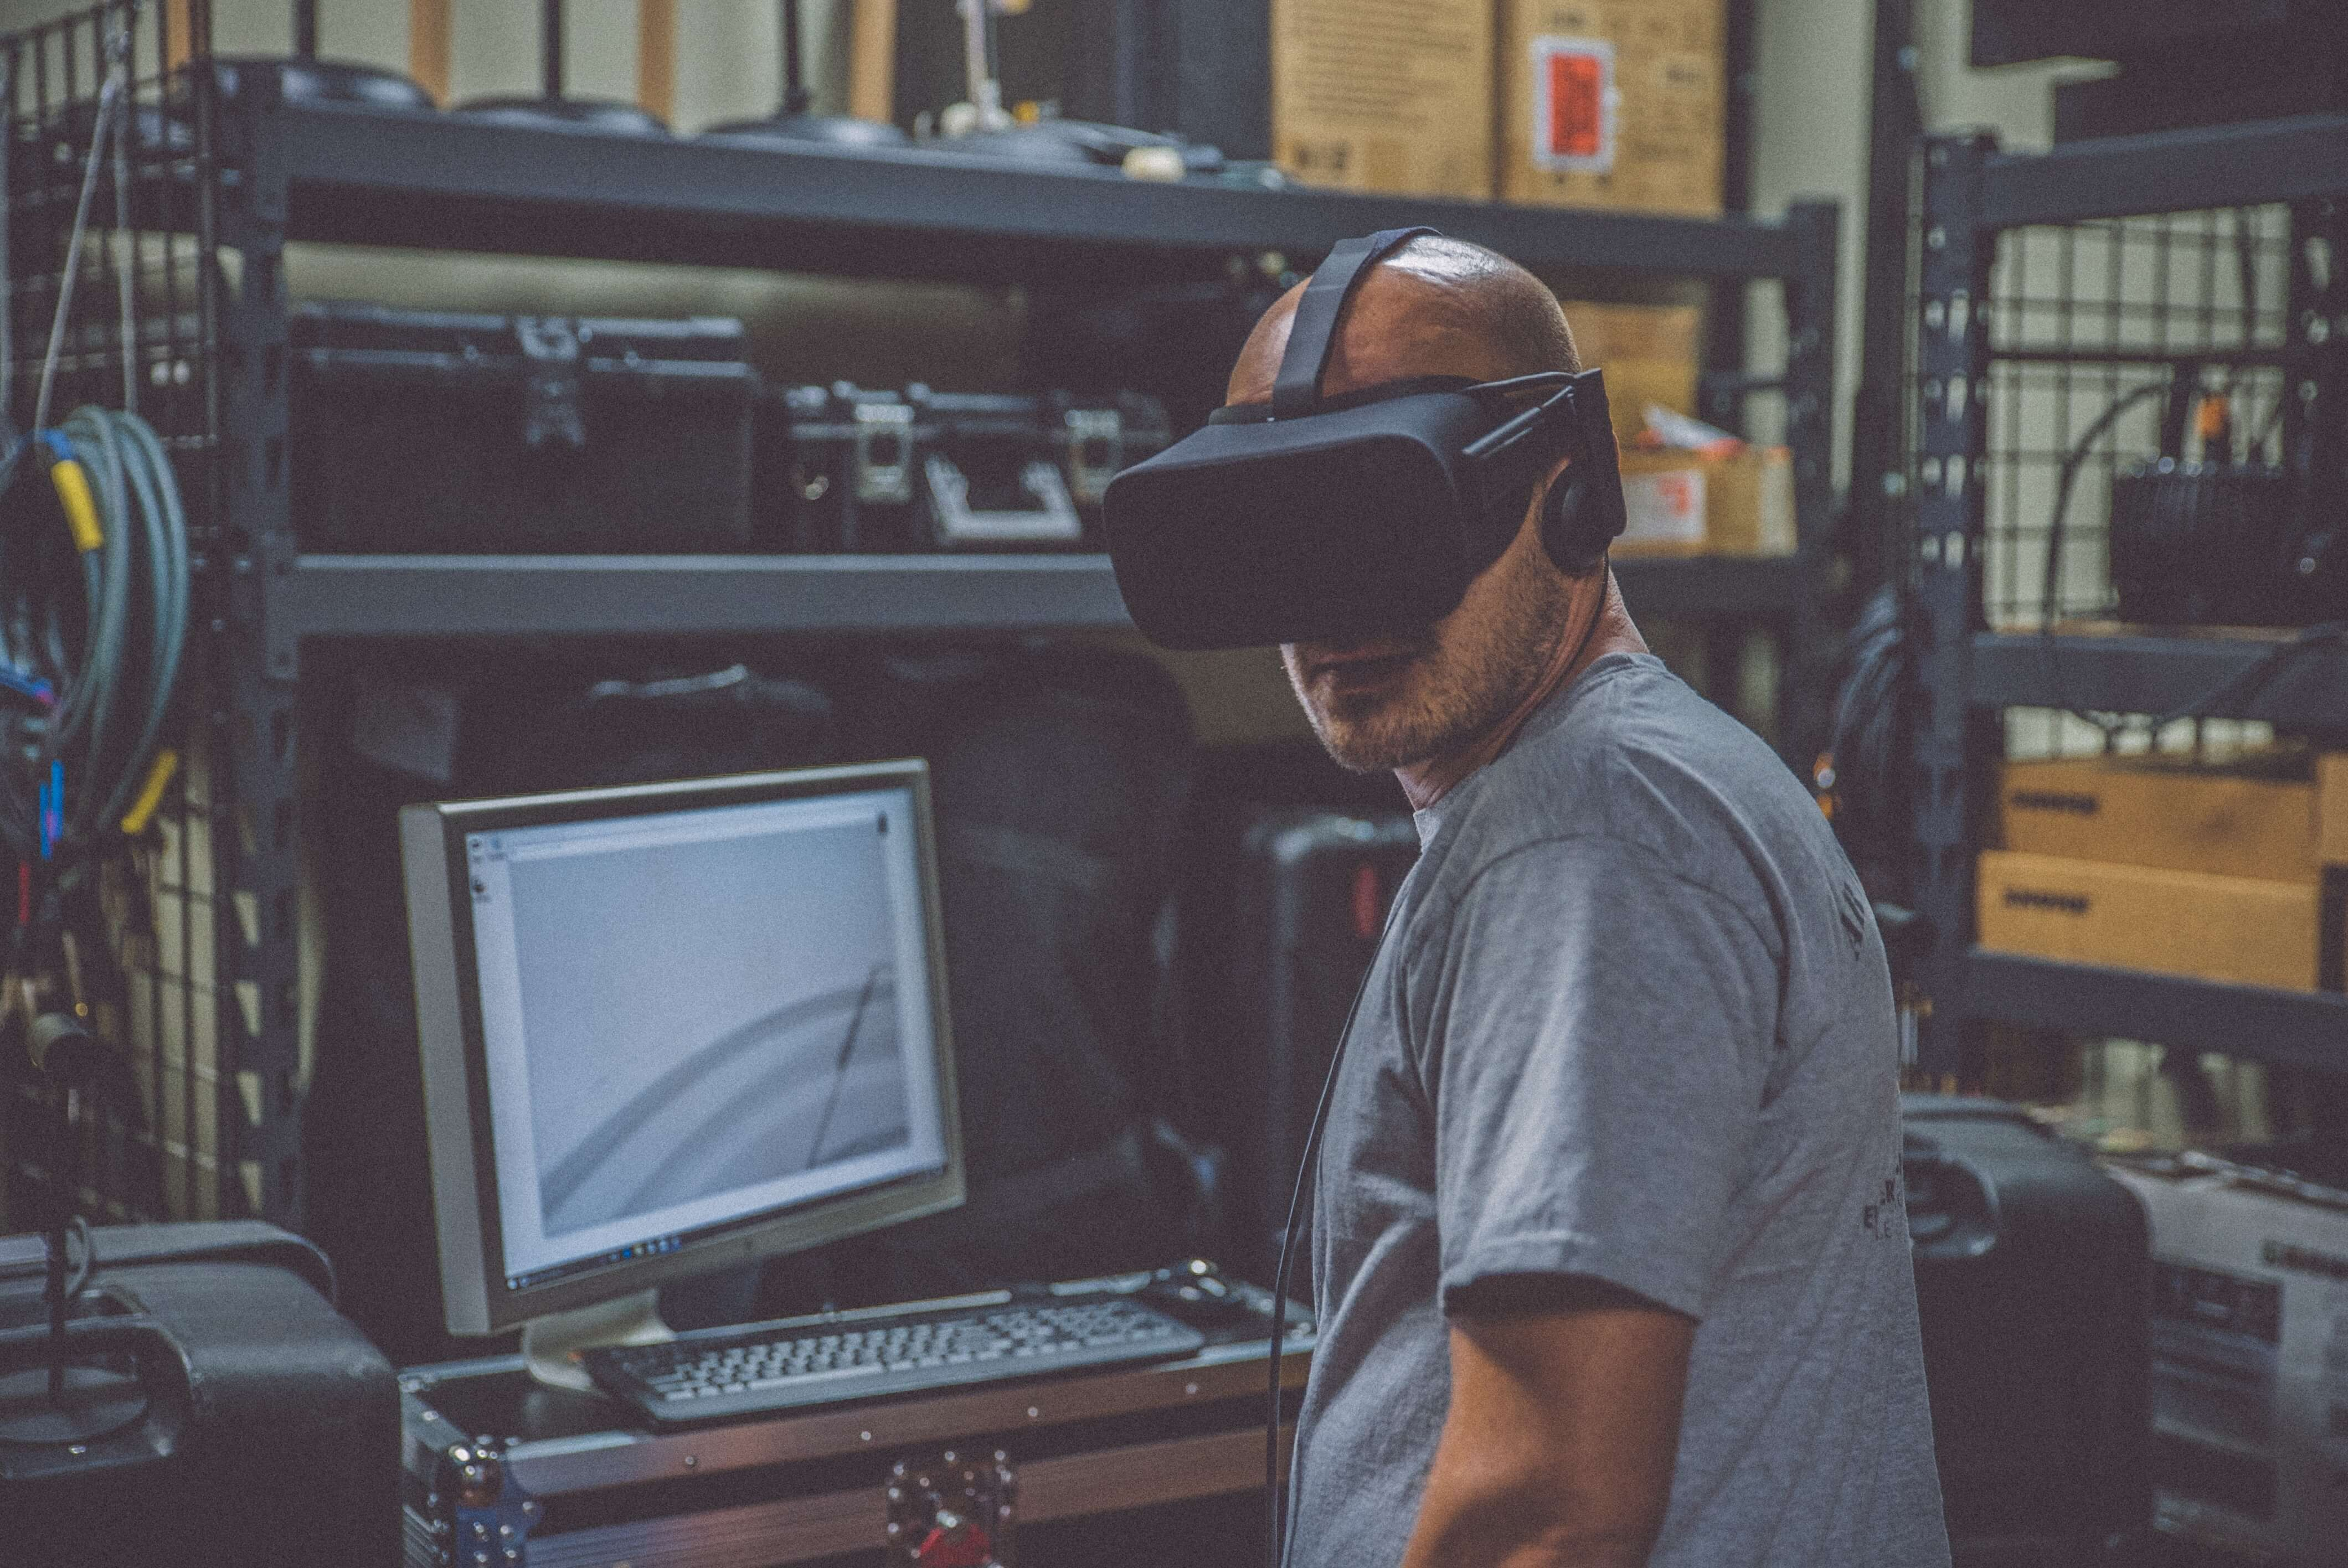 man in VR headset standing in front of a computer